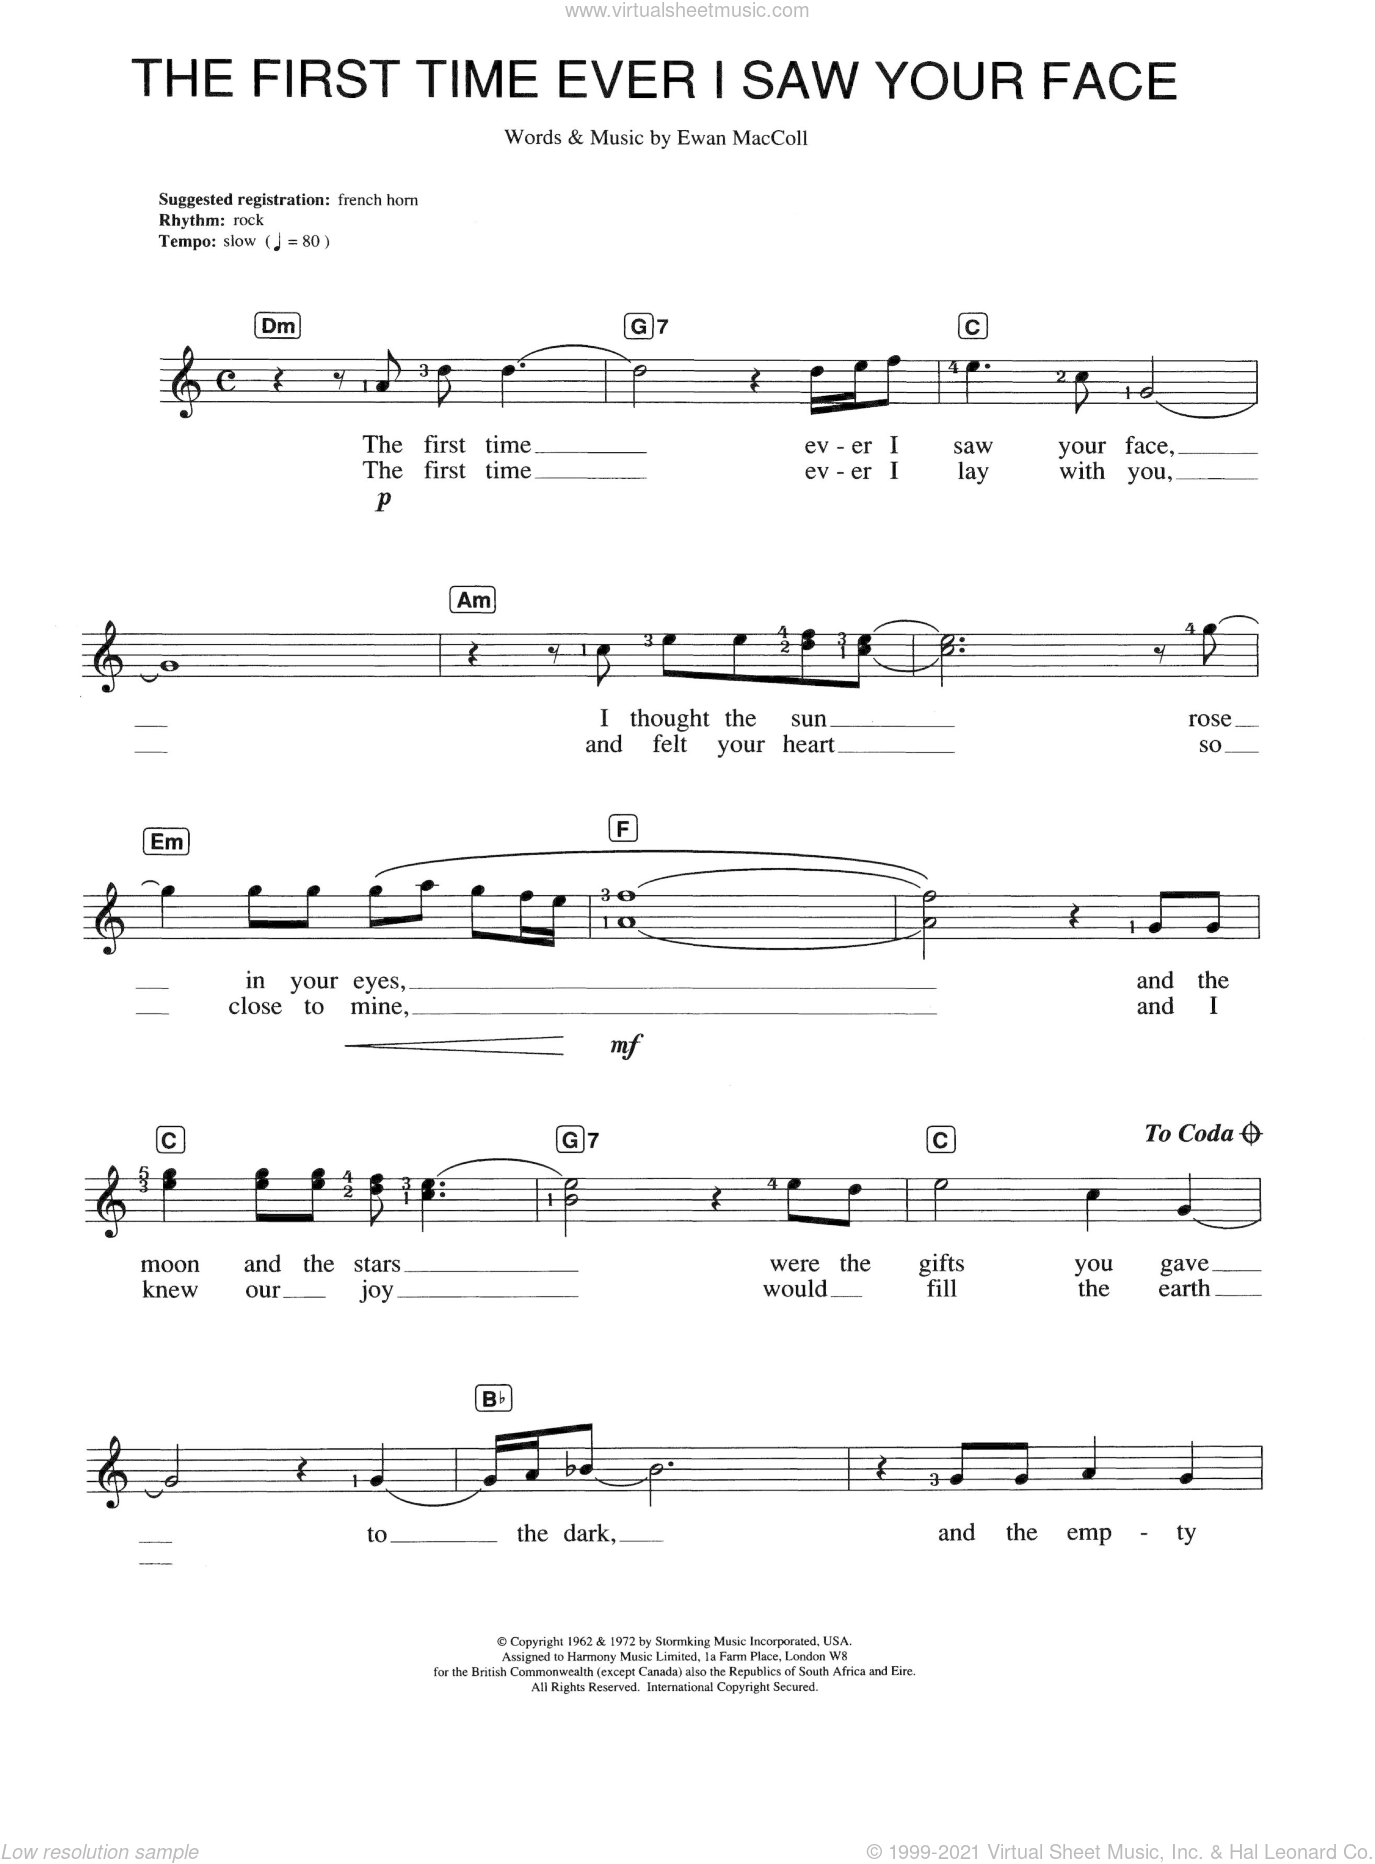 The First Time Ever I Saw Your Face sheet music for piano solo (chords, lyrics, melody) by Ewan MacColl, Alison Moyet and Johnny Mathis. Score Image Preview.